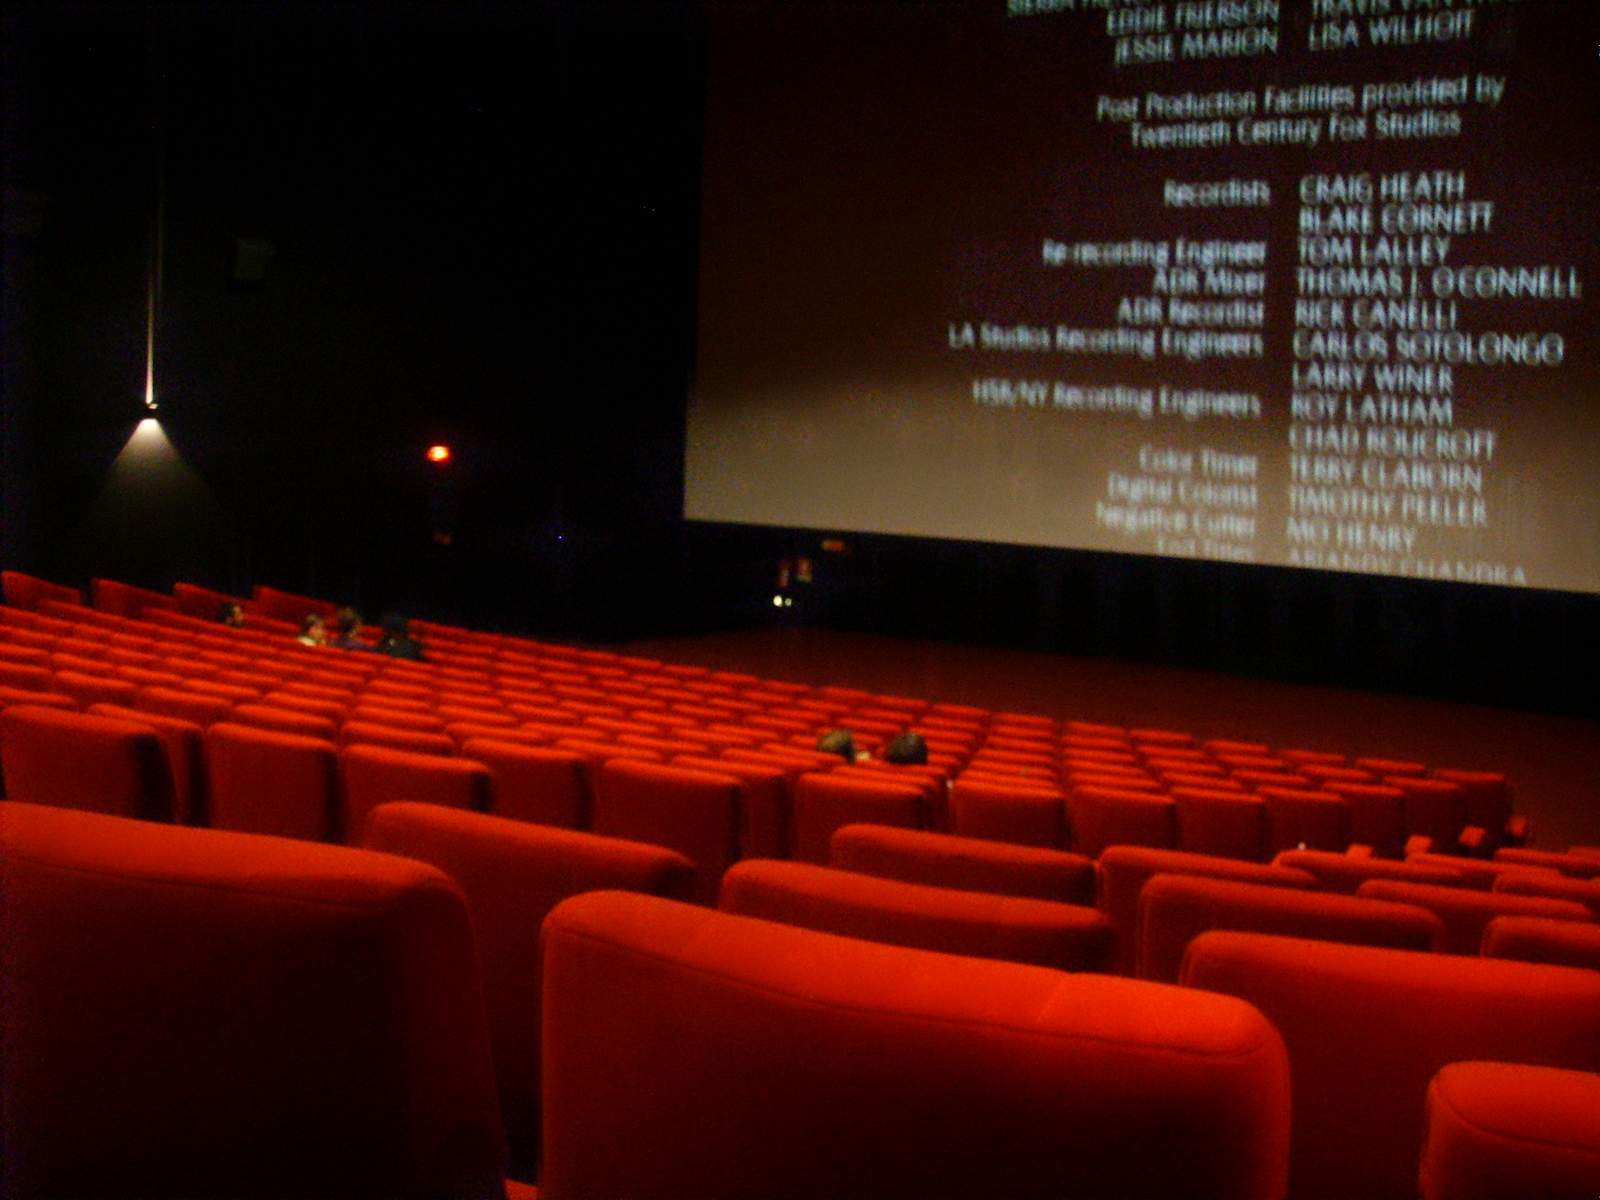 File:Interno di un sala da CINEMA.JPG - Wikipedia, the free ...